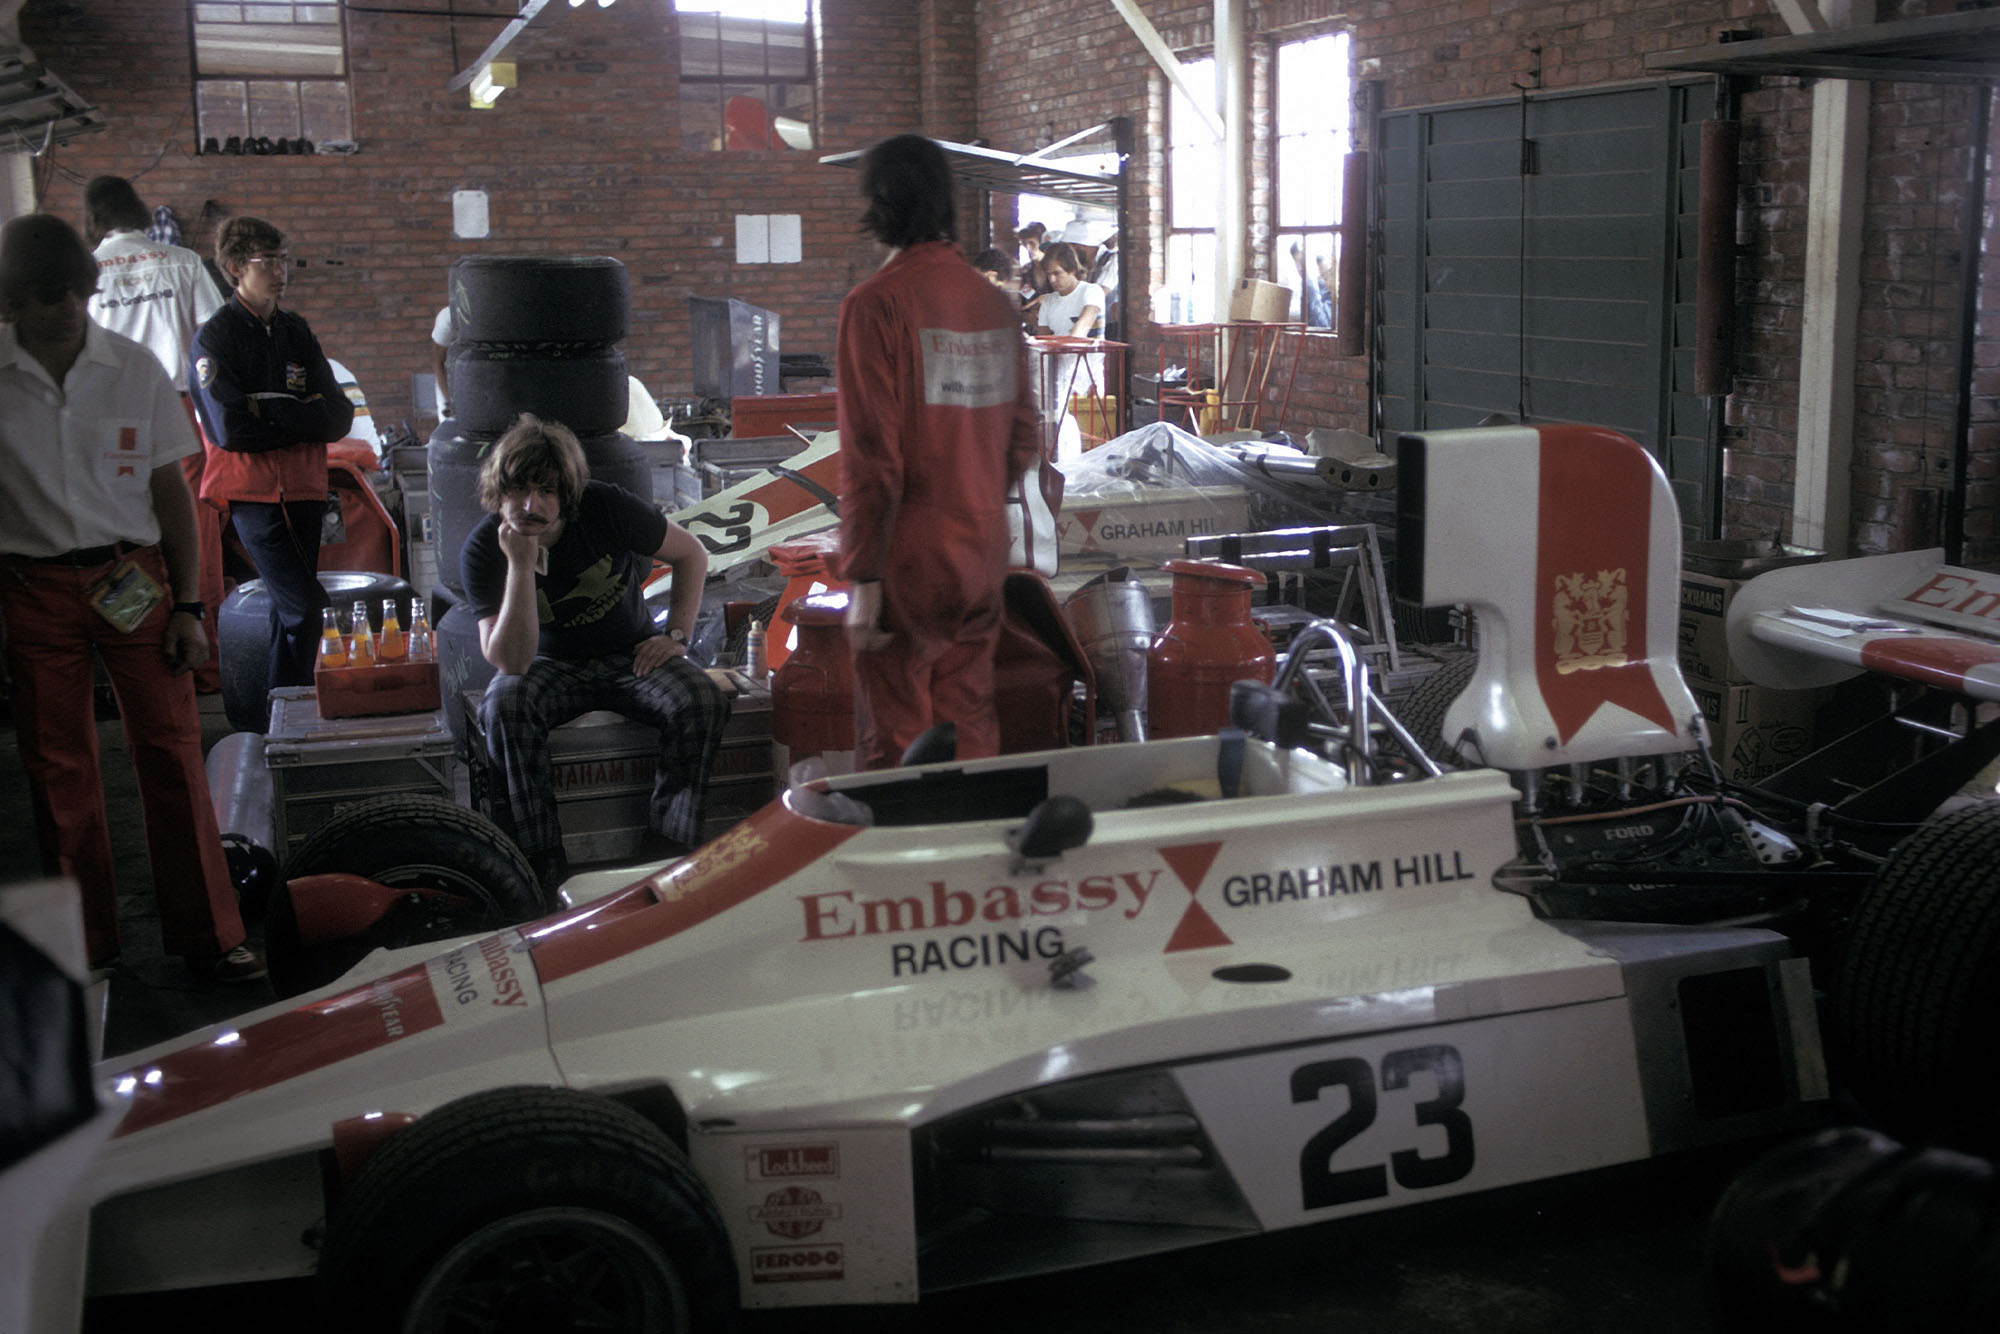 AUTO - F1 1975 - SOUTH AFRICA GP - KYALAMI - PHOTO: DPPI GRAHAM HILL (GBR) / EMBASSY HILL FORD - AMBIANCE - PIT